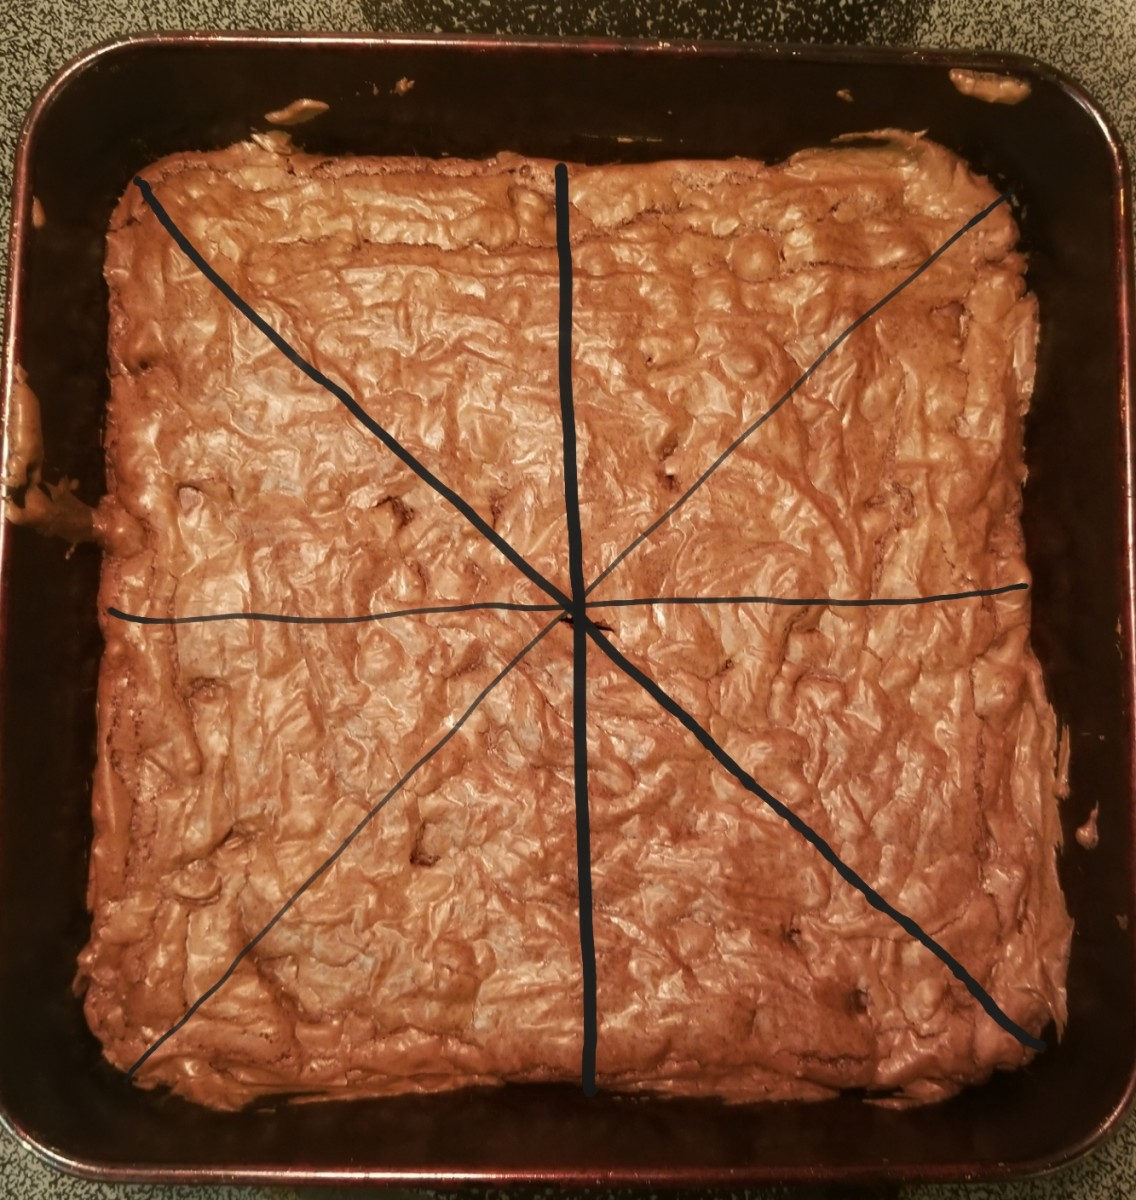 Step 2: Cut brownies into triangles.